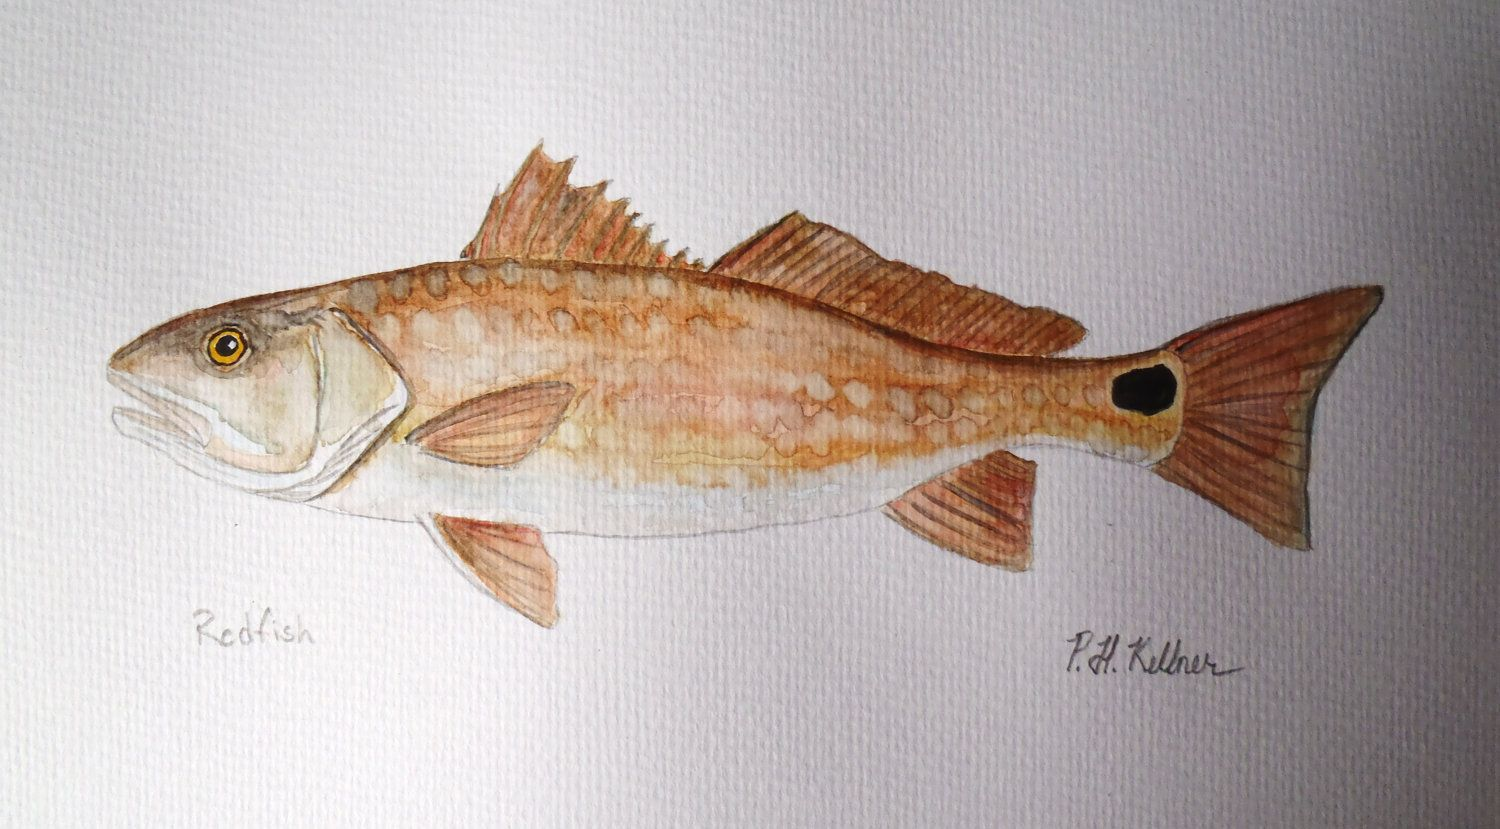 RED DRUM CHANNEL BASS REDFISH FISH PAINTING FISHING ART REAL CANVAS PRINT